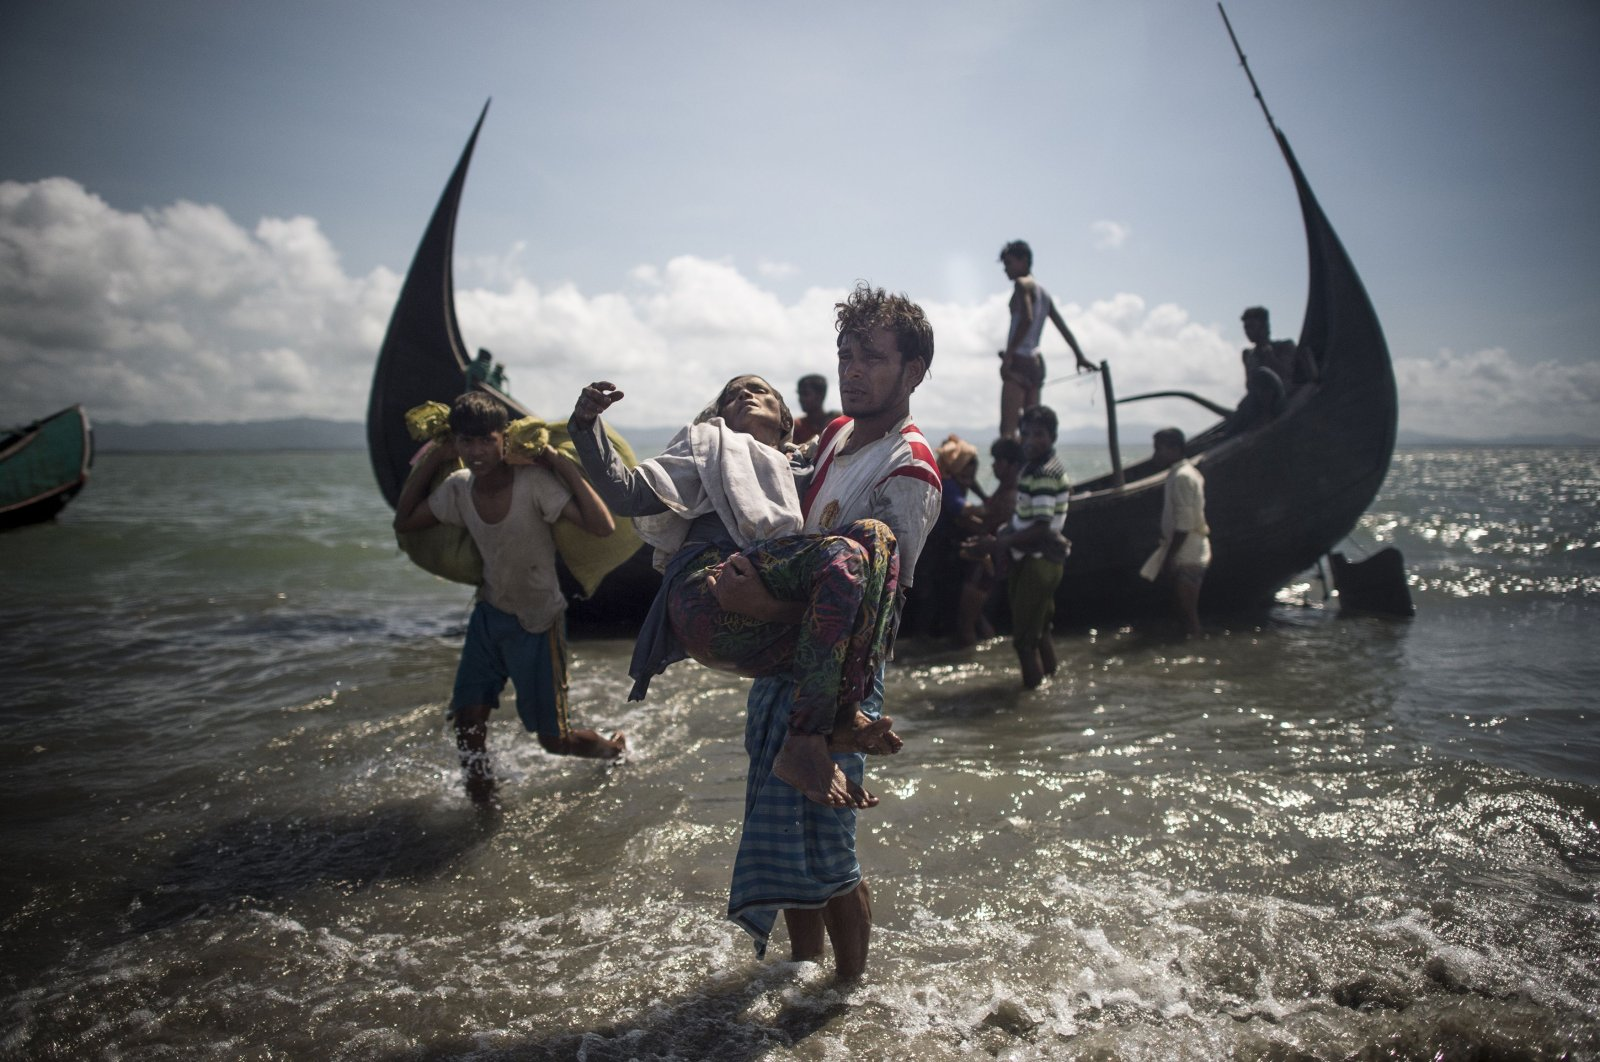 A Bangladeshi man helps Rohingya Muslim refugees to disembark from a boat on the Bangladeshi shoreline of the Naf river in Teknaf, after crossing the border from Myanmar, Sept. 30, 2017. (AFP Photo)